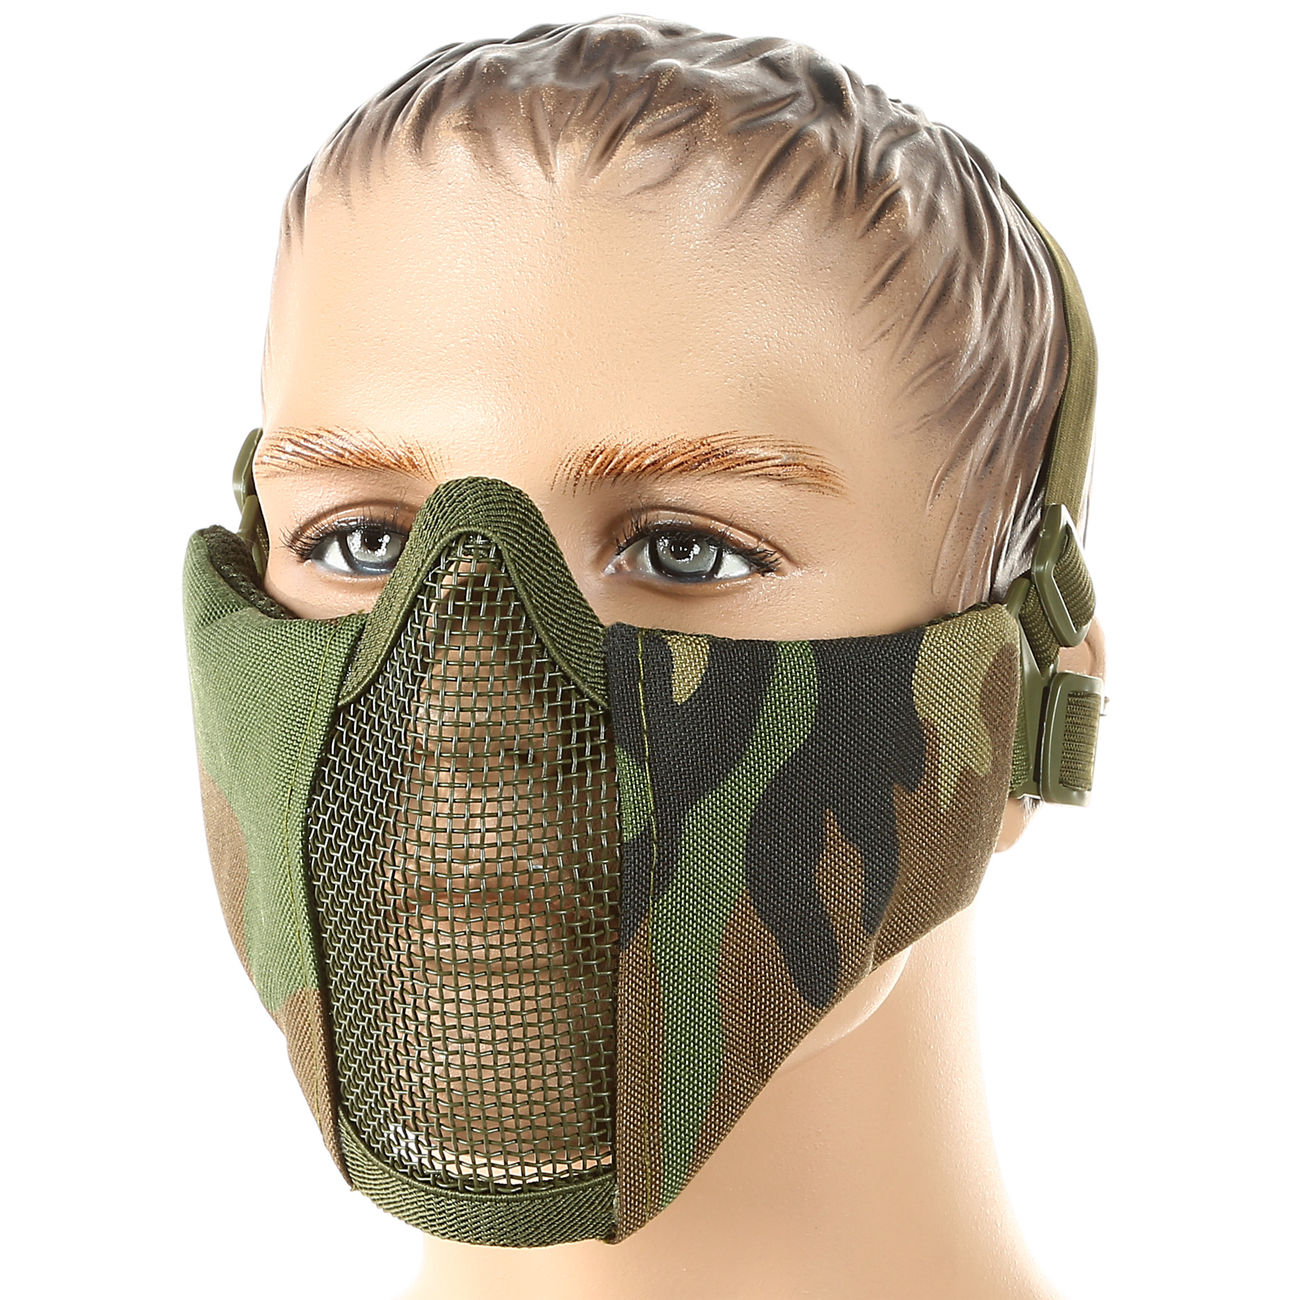 101 INC. Airsoft Gittermaske woodland 0